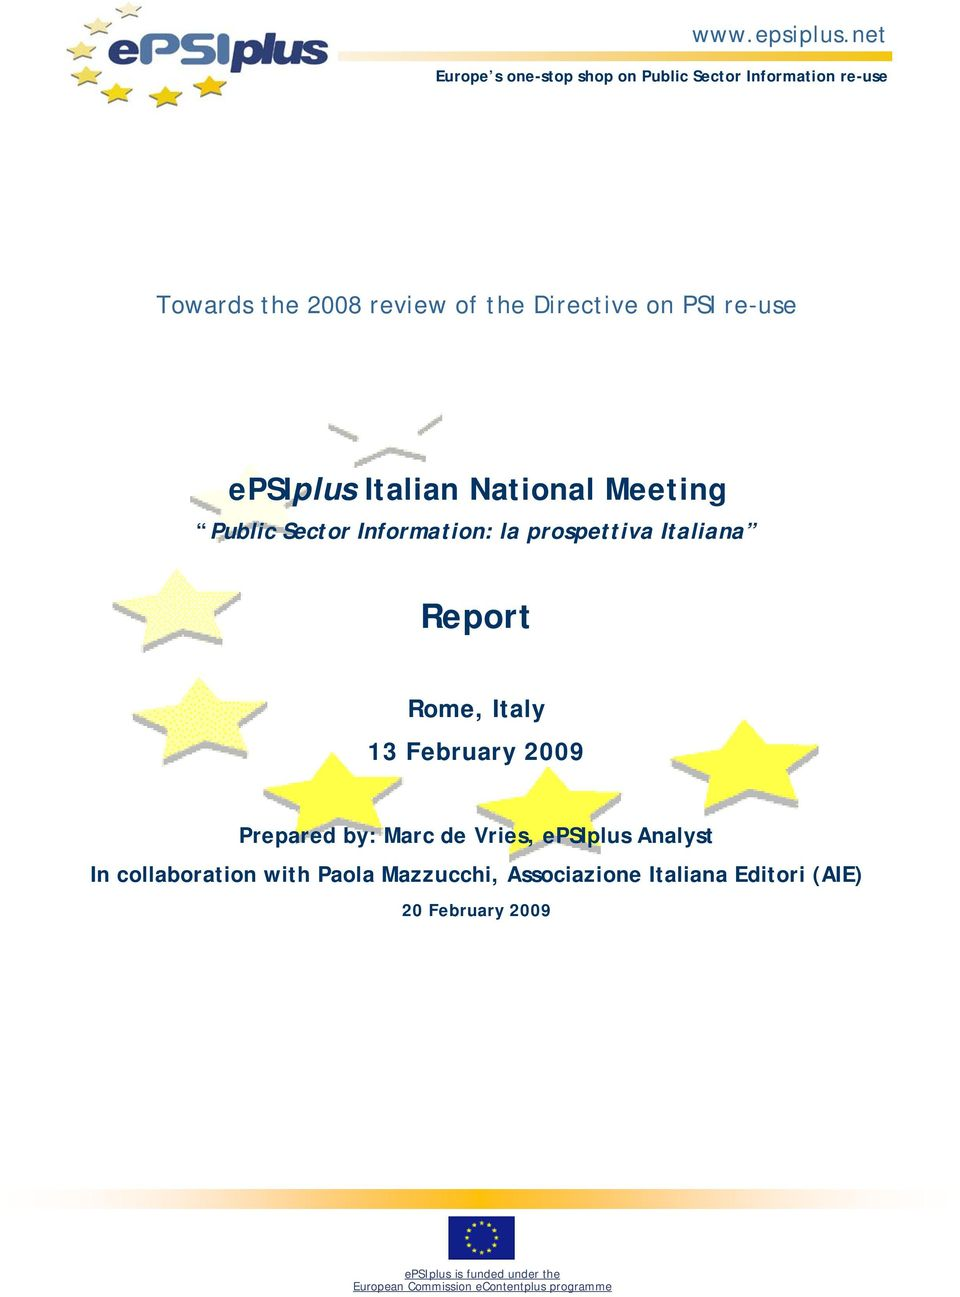 re-use epsiplus Italian National Meeting Public Sector Information: la prospettiva Italiana Report Rome, Italy 13